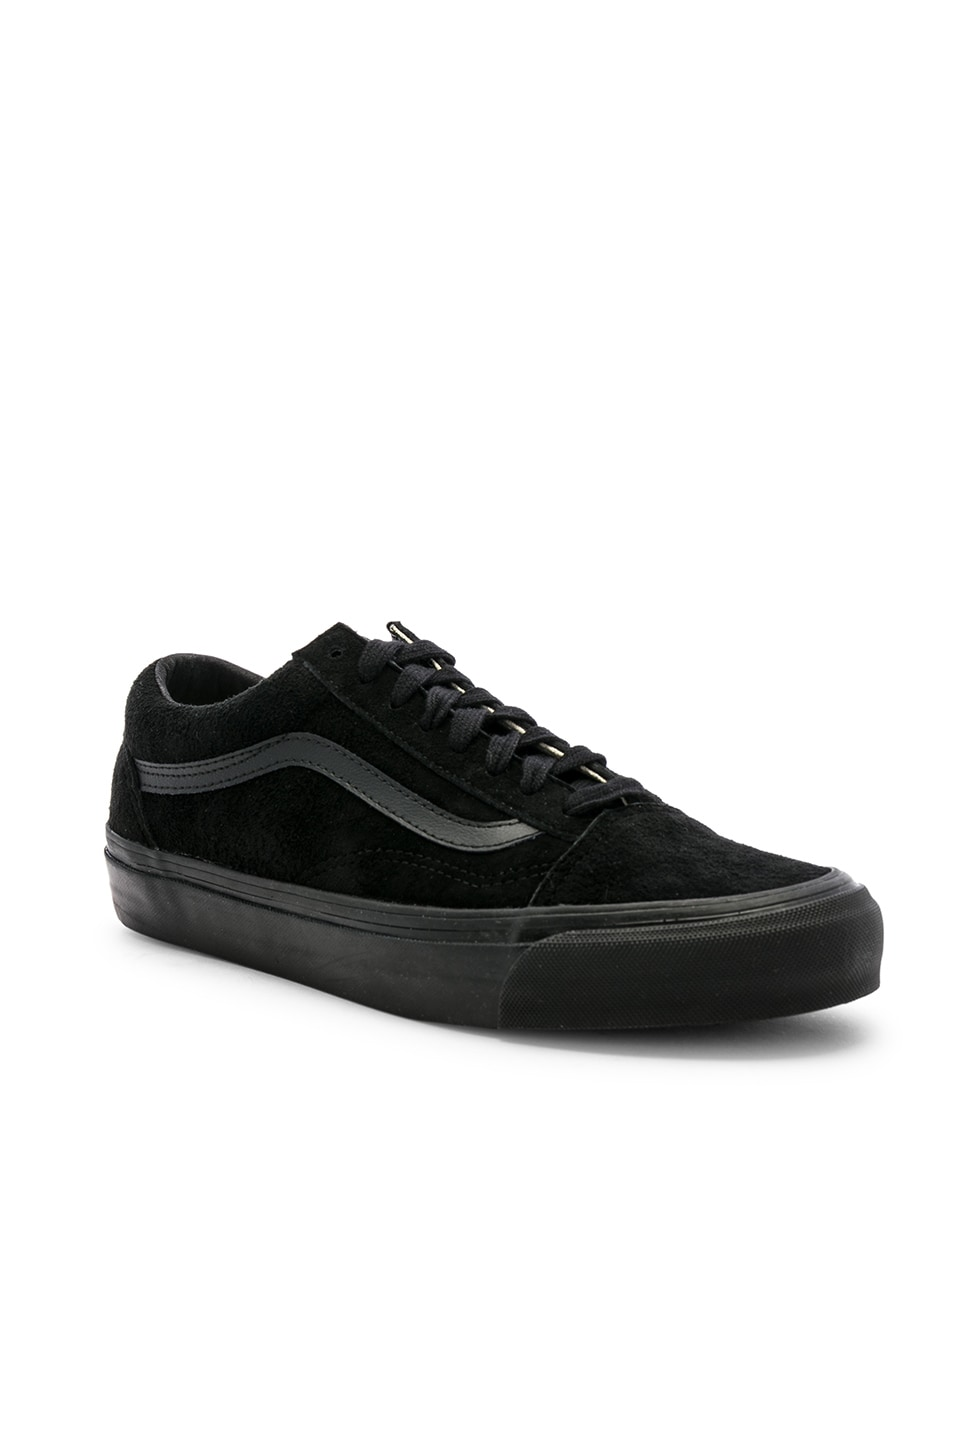 Image 1 of Vans Vault OG Old Skool LX in Black